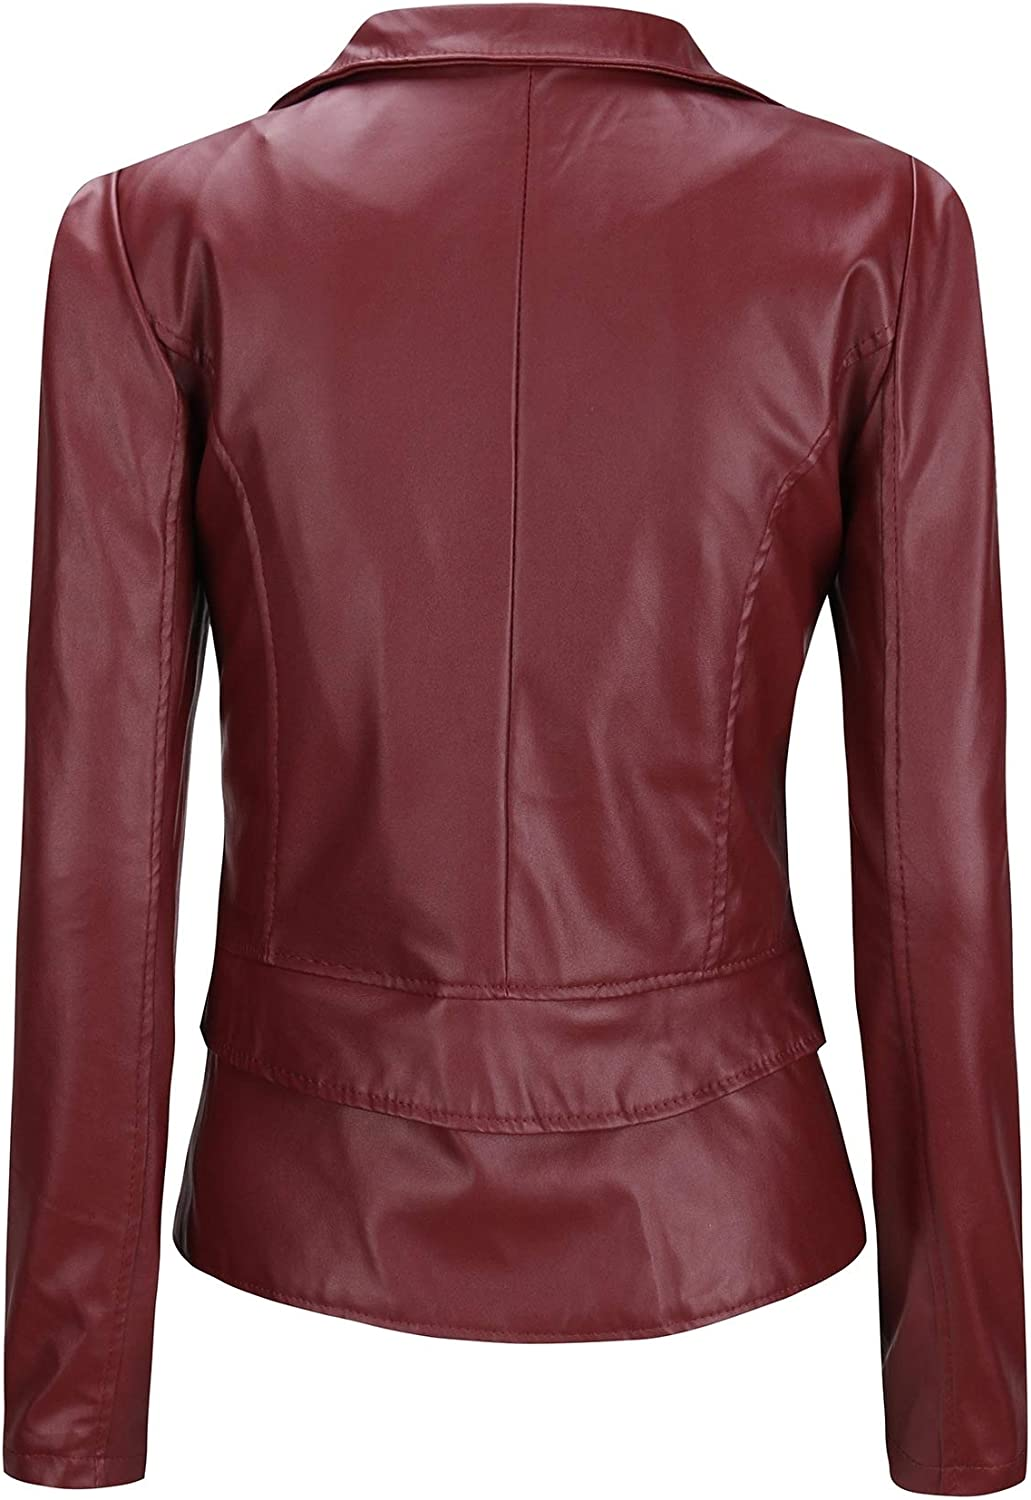 Coolred-Women Full-Zip PU Faux Leather Motorcycle Two Way Wear Jacket Coat Wine Red XS